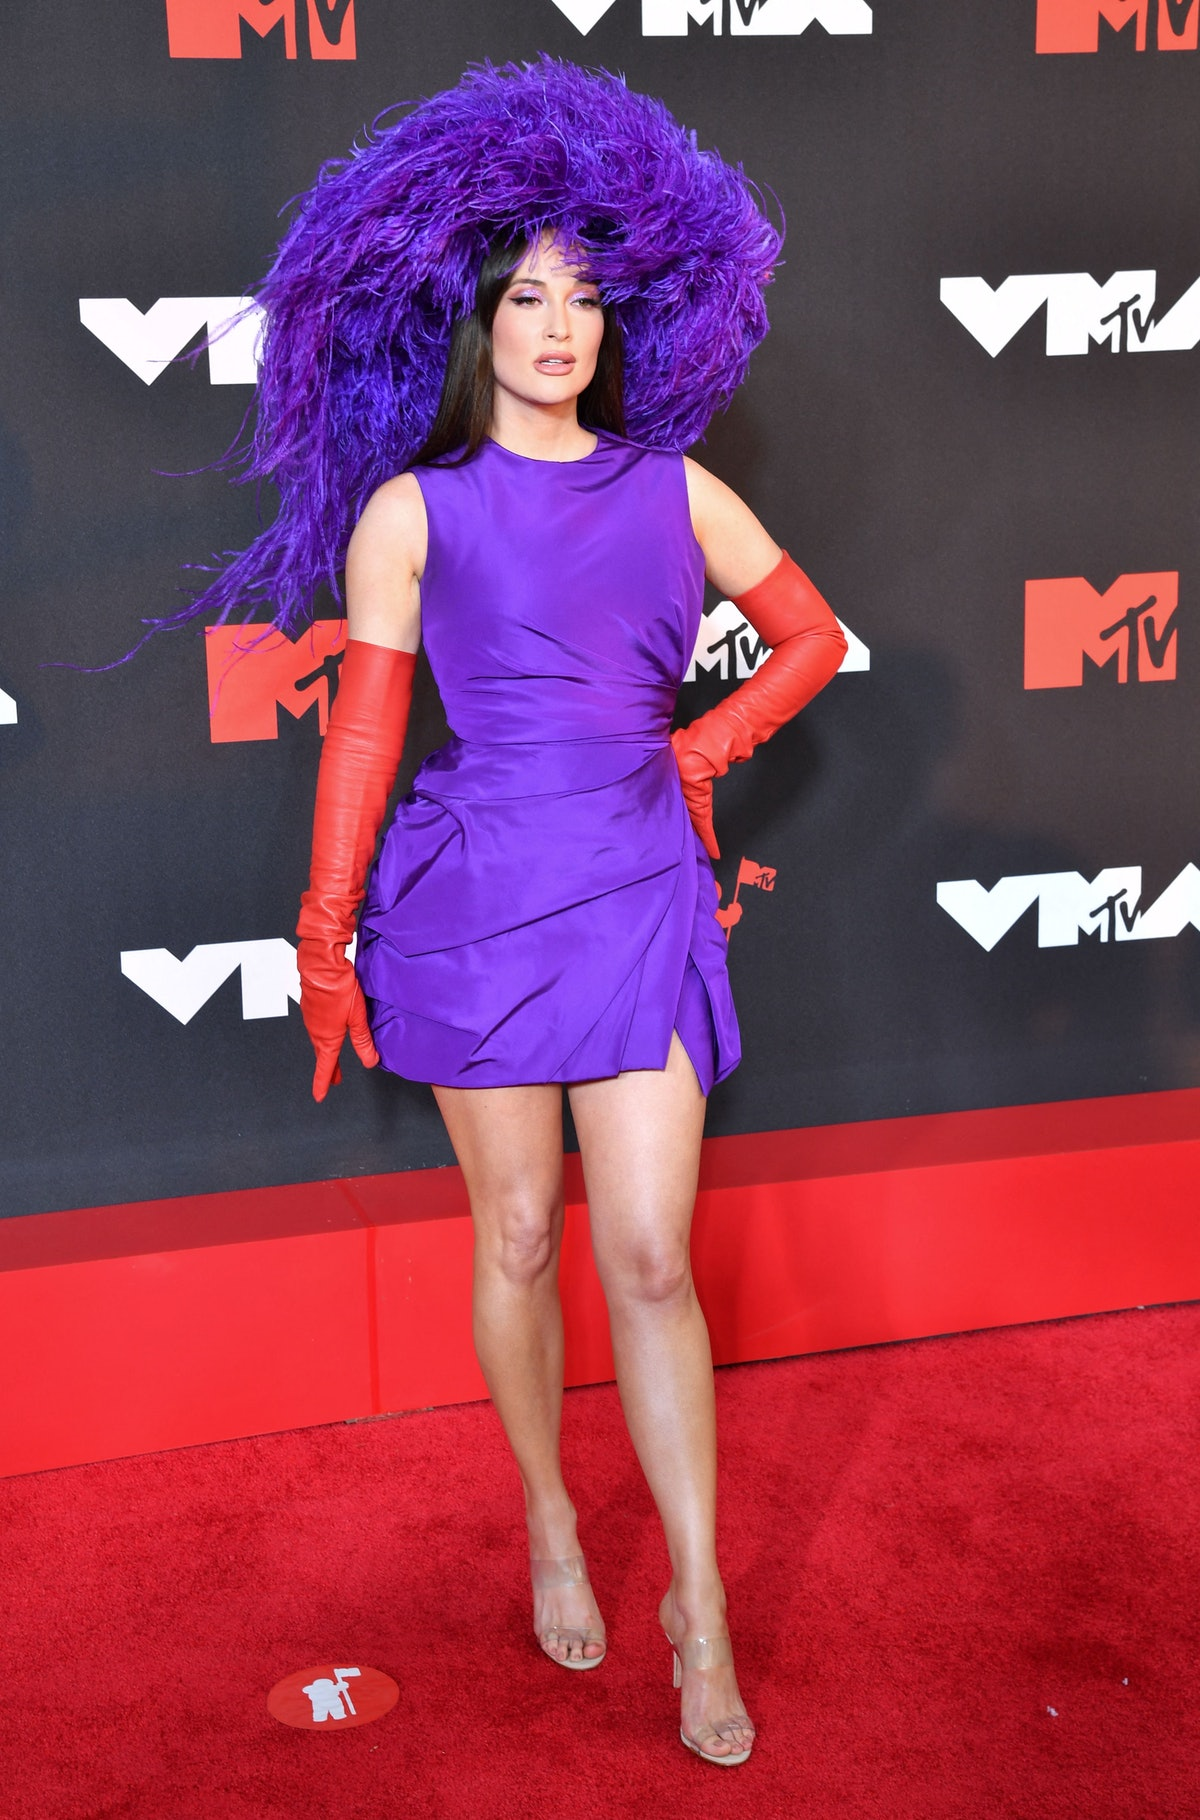 Kacey Musgraves arrives for the 2021 MTV Video Music Awards at Barclays Center in Brooklyn, New York...